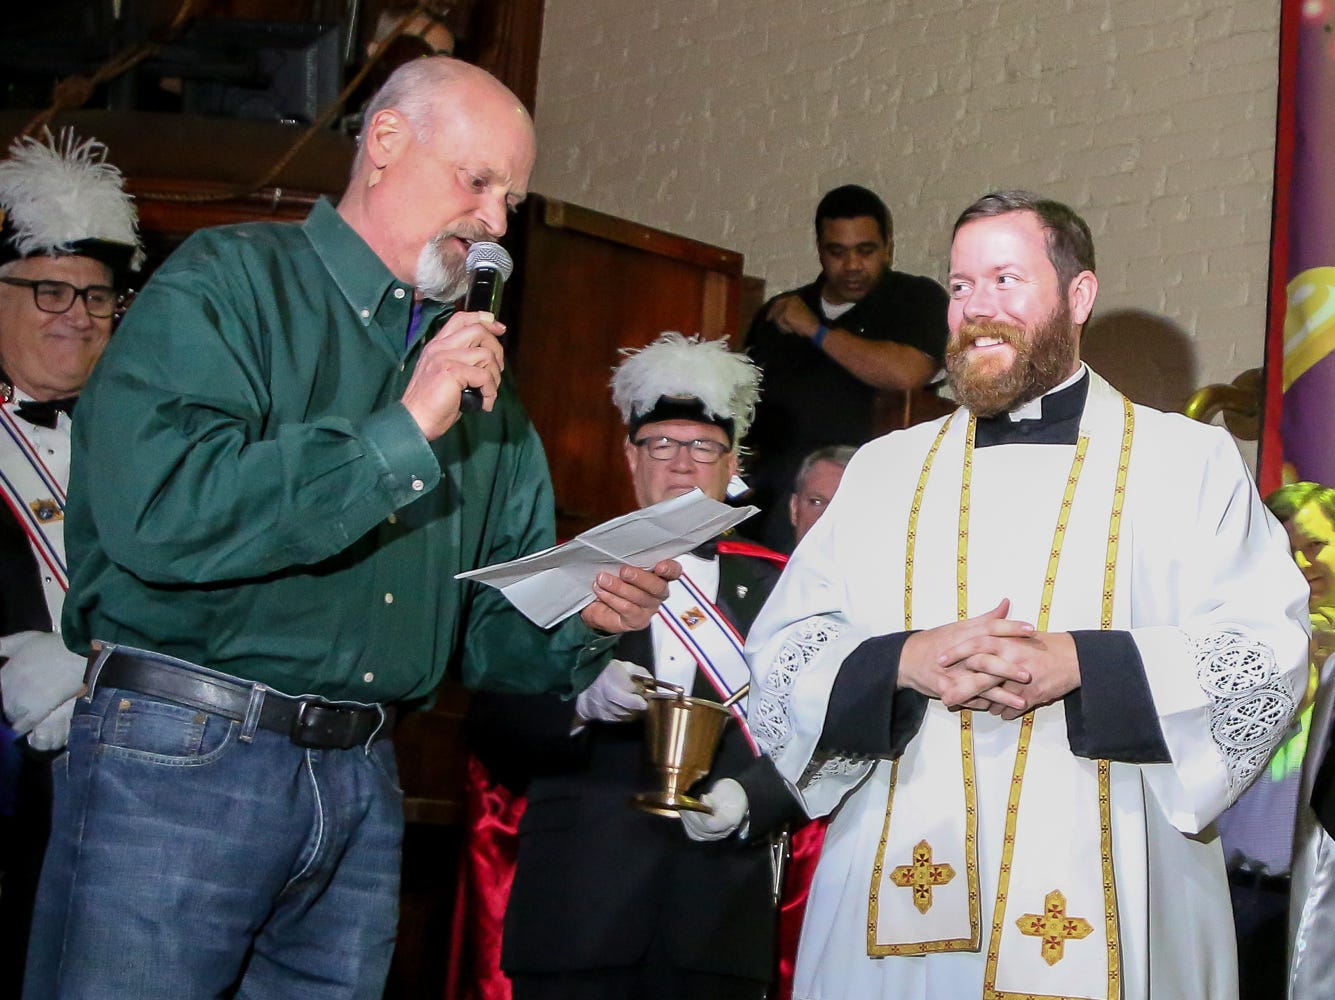 Danny Zimmern, president of Pensacola Mardi Gras, Inc., left, introduces The Reverend Nicholas Schumm at Seville Quarter during the 2019 Pensacola Mardi Gras season kickoff celebration on Saturday, January 5, 2019.